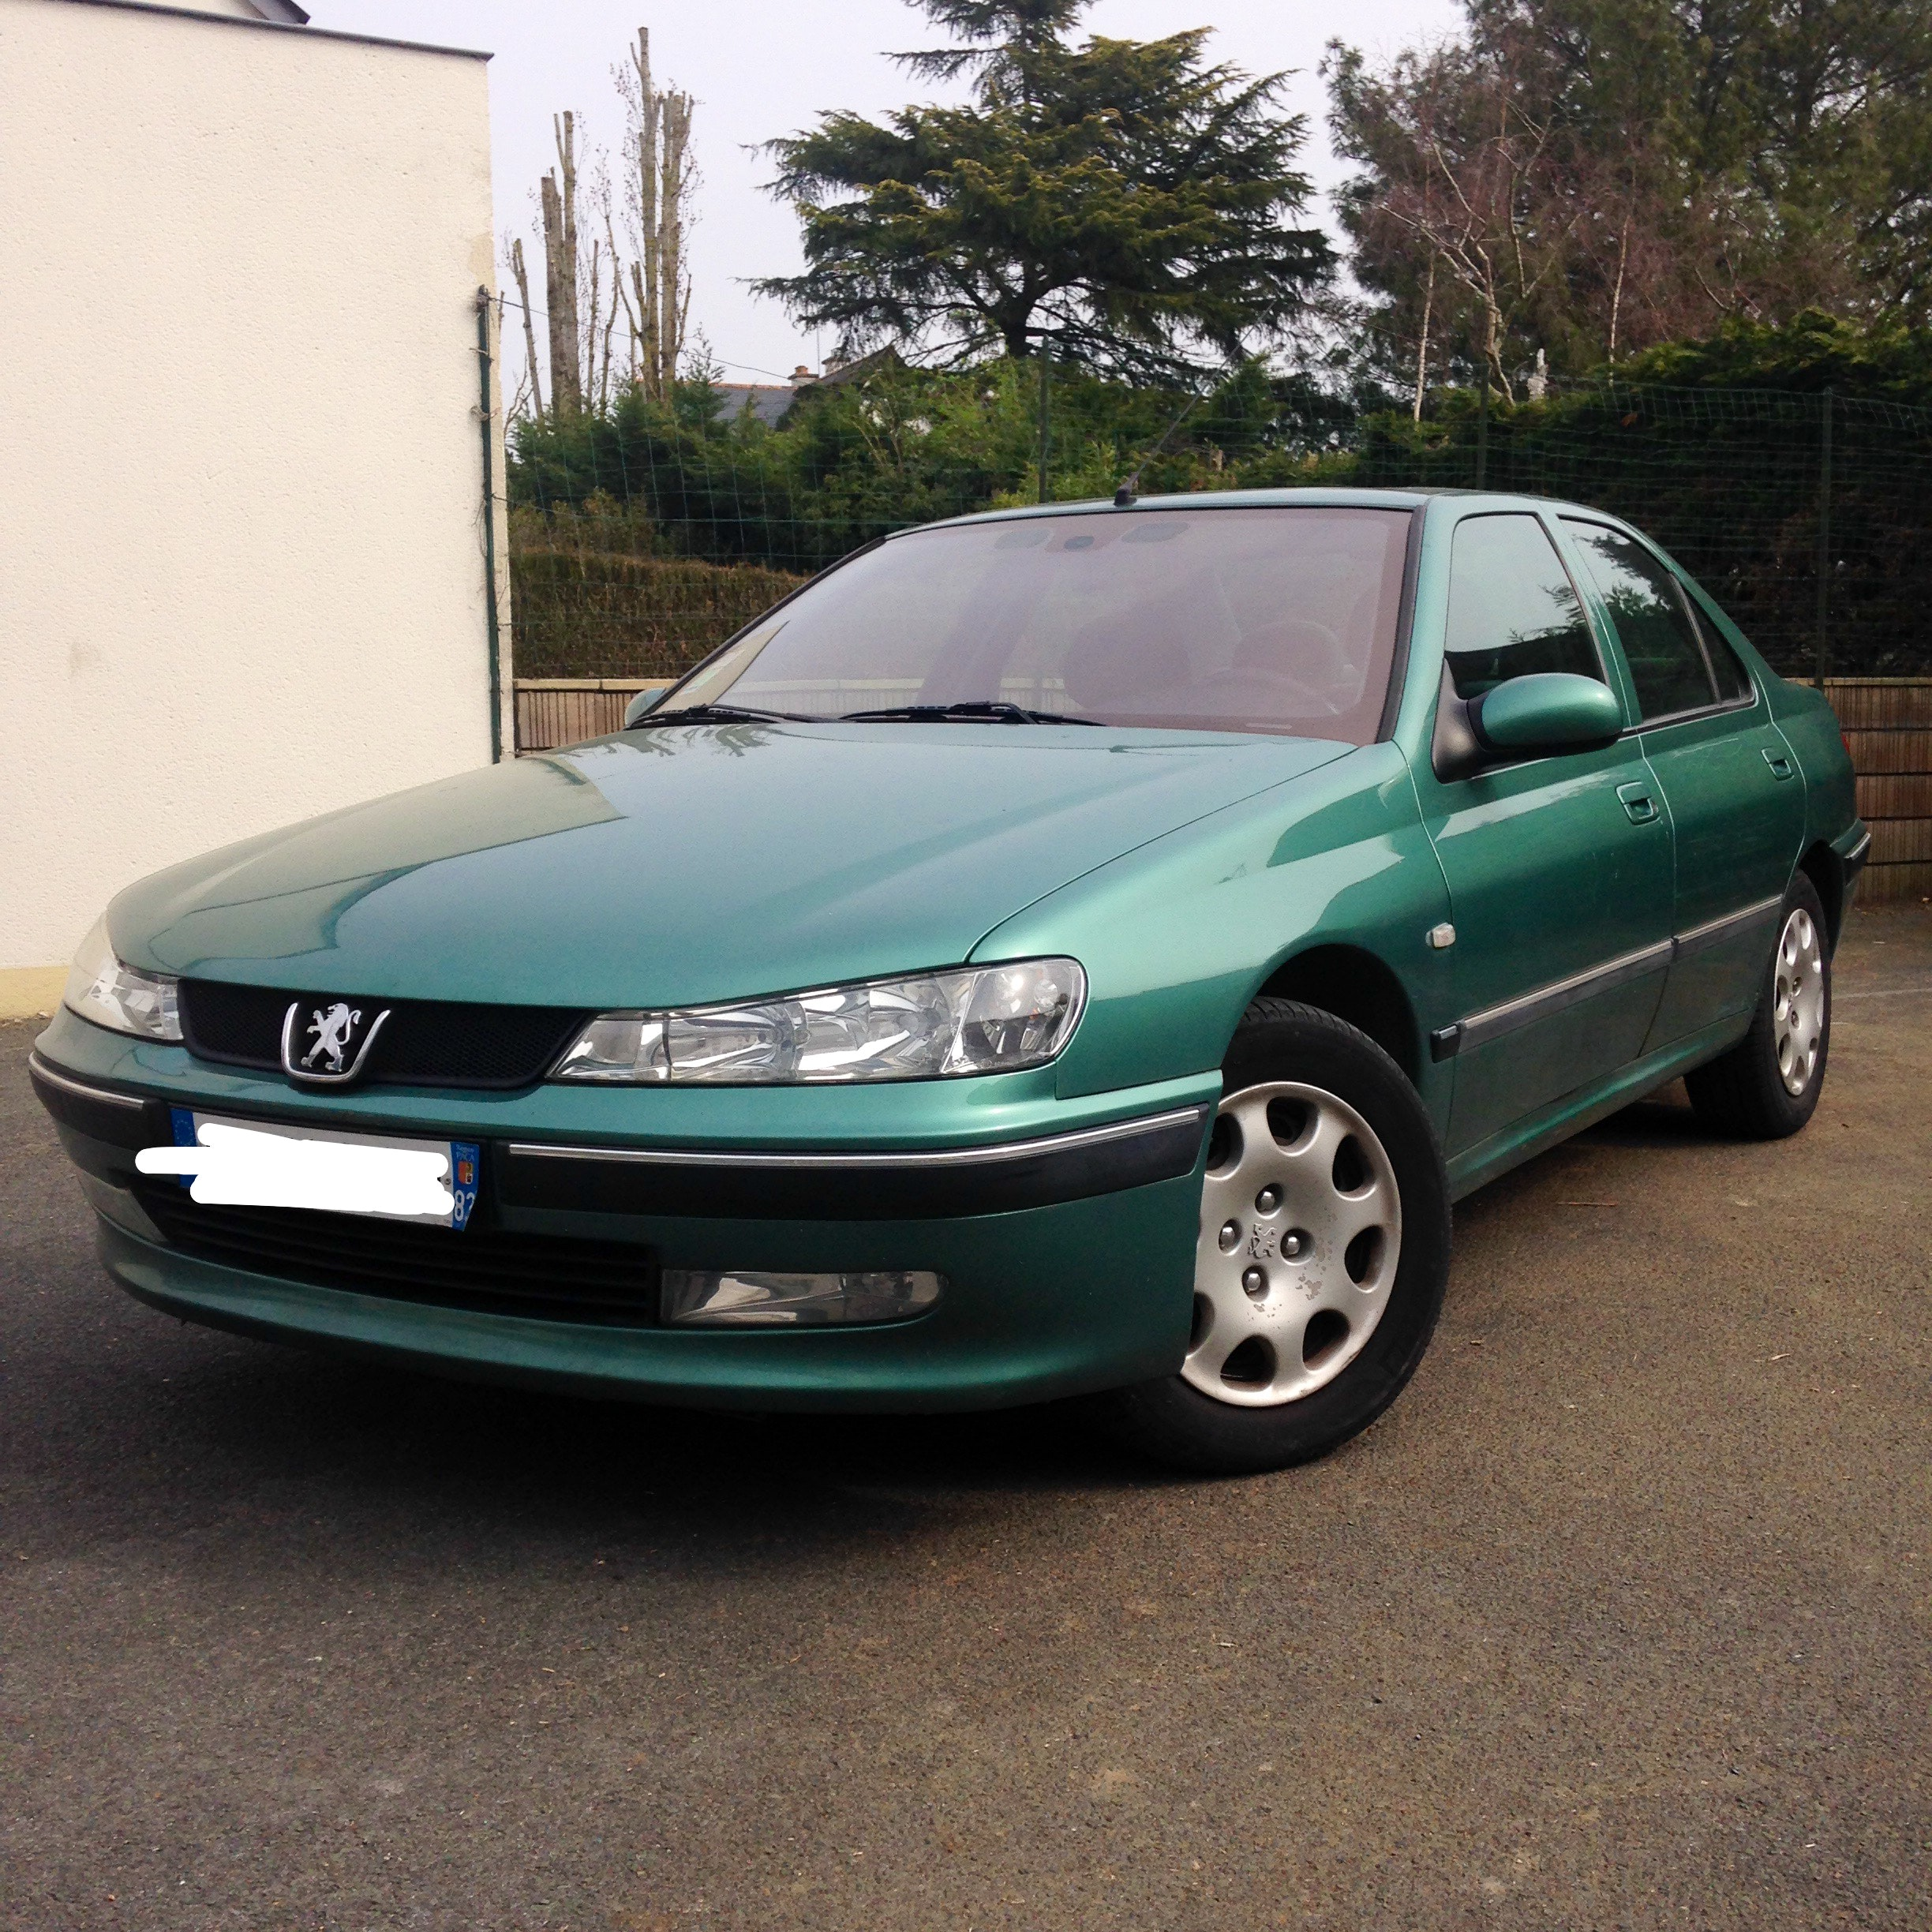 Peugeot 406, 2002, Essence - Berline Angers (49)